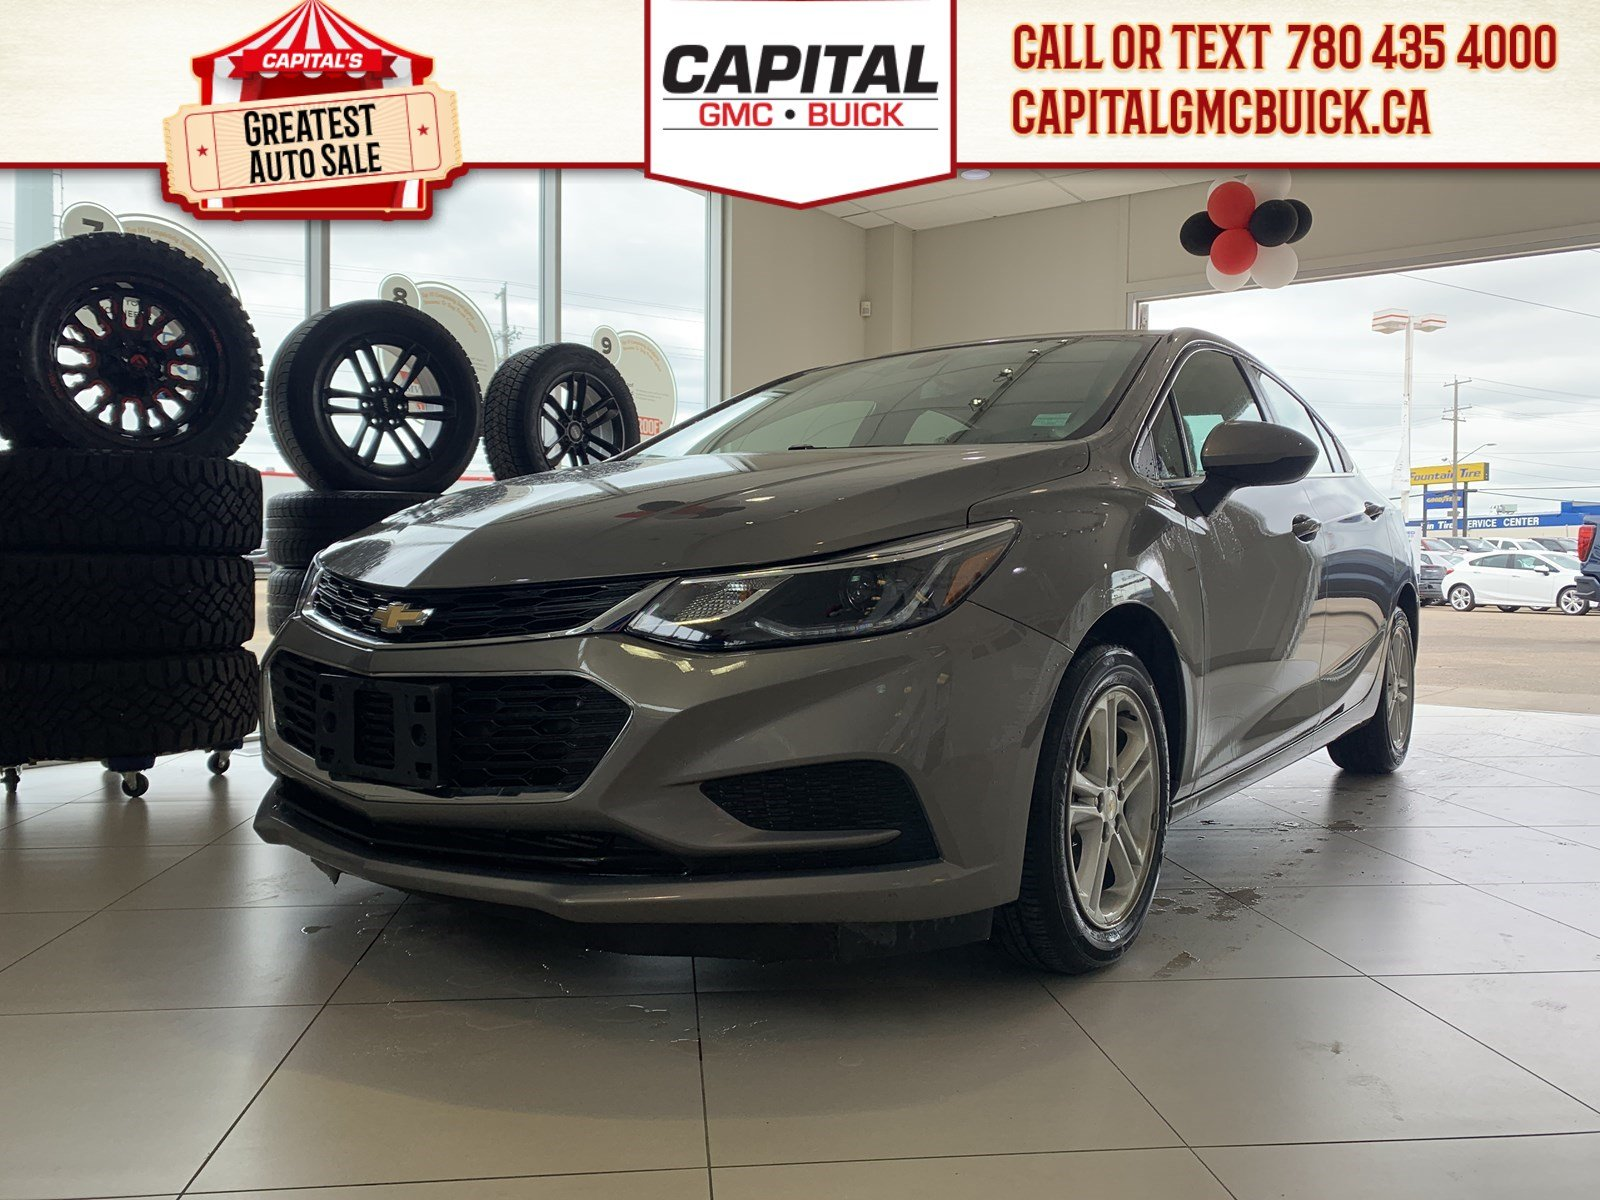 Certified Pre-Owned 2018 Chevrolet Cruze LT | HEATED SEATS | BACKUP CAMERA | SUNROOF | 27K KMS